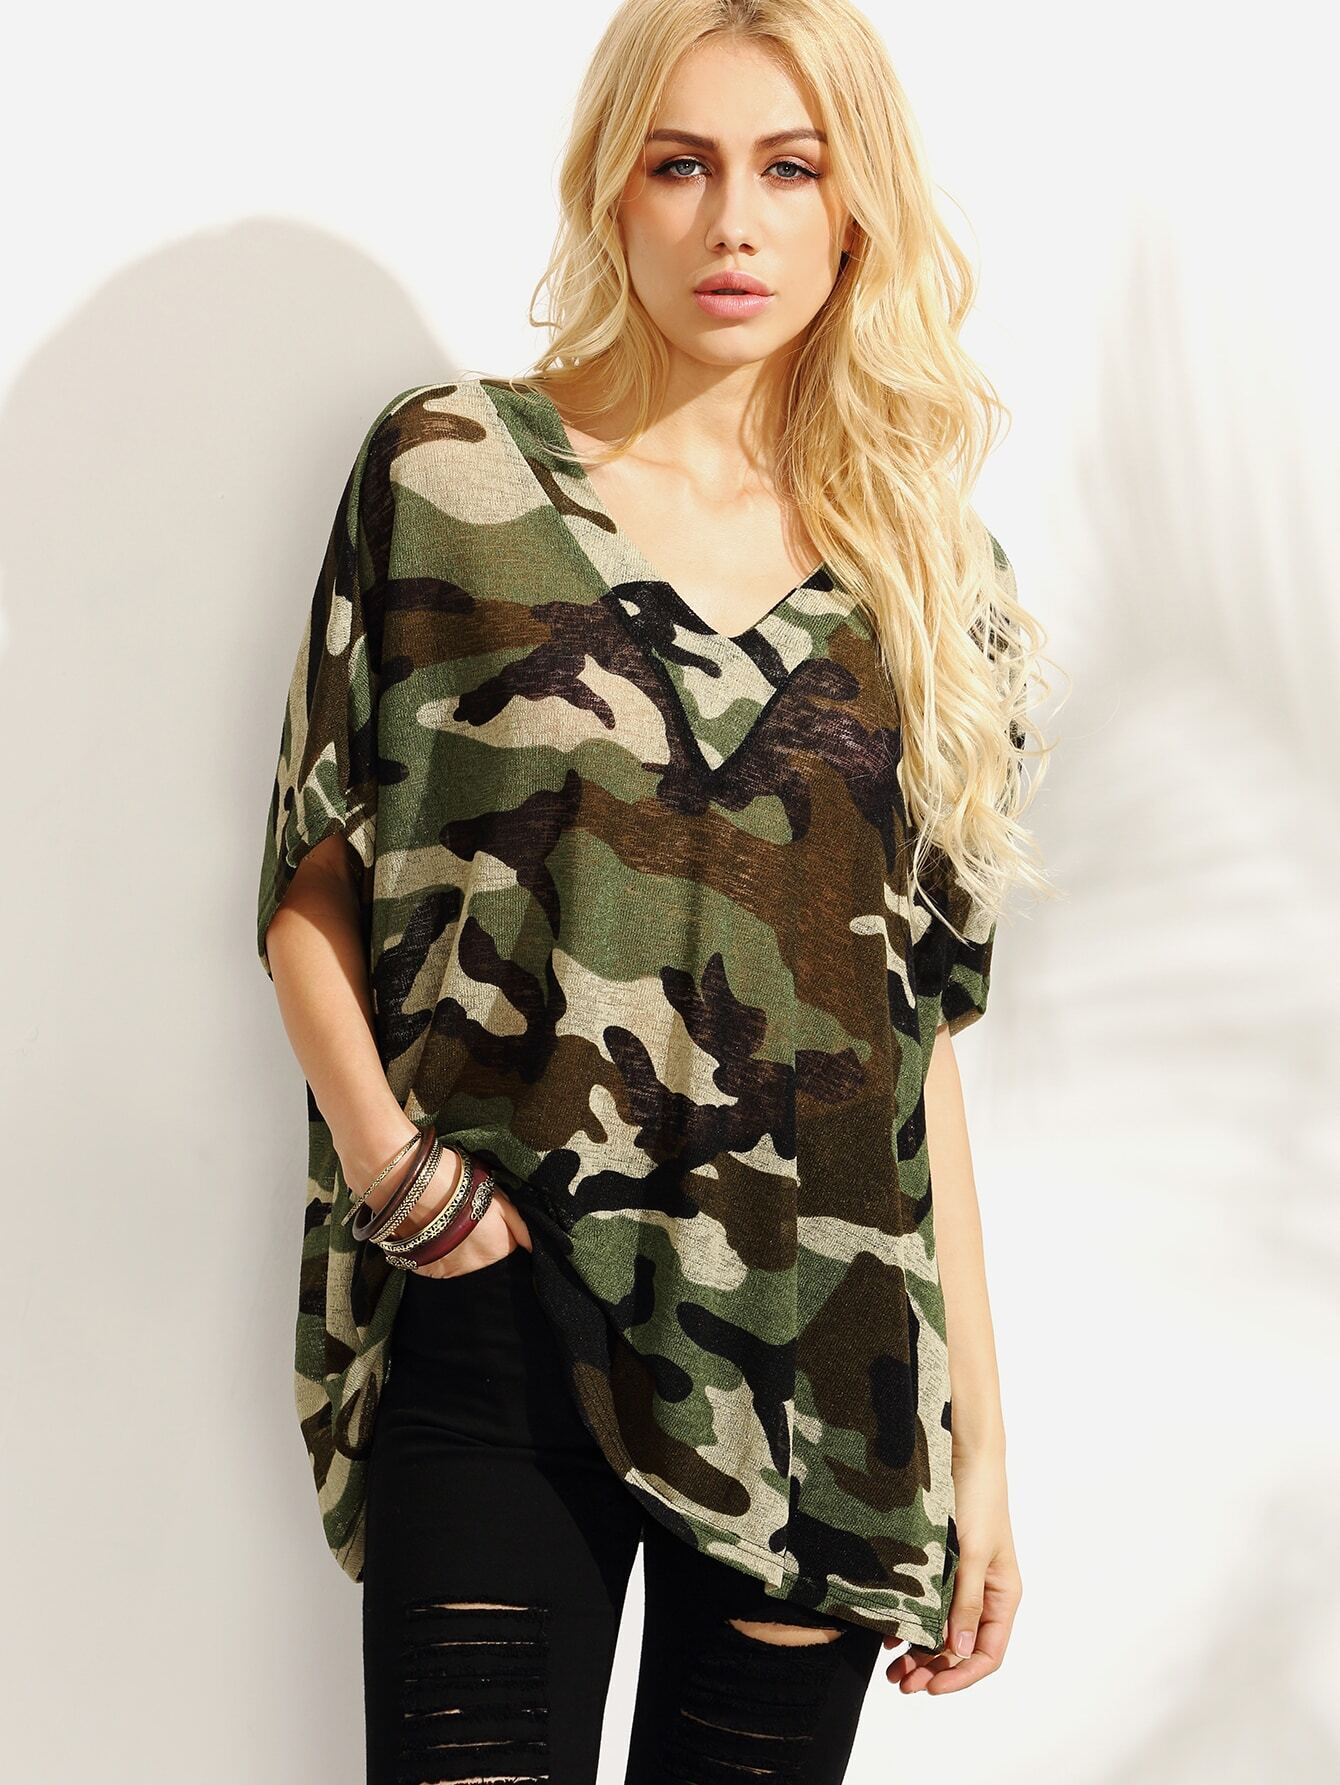 Olive Green Camo Print Oversized T Shirt Emmacloth Women